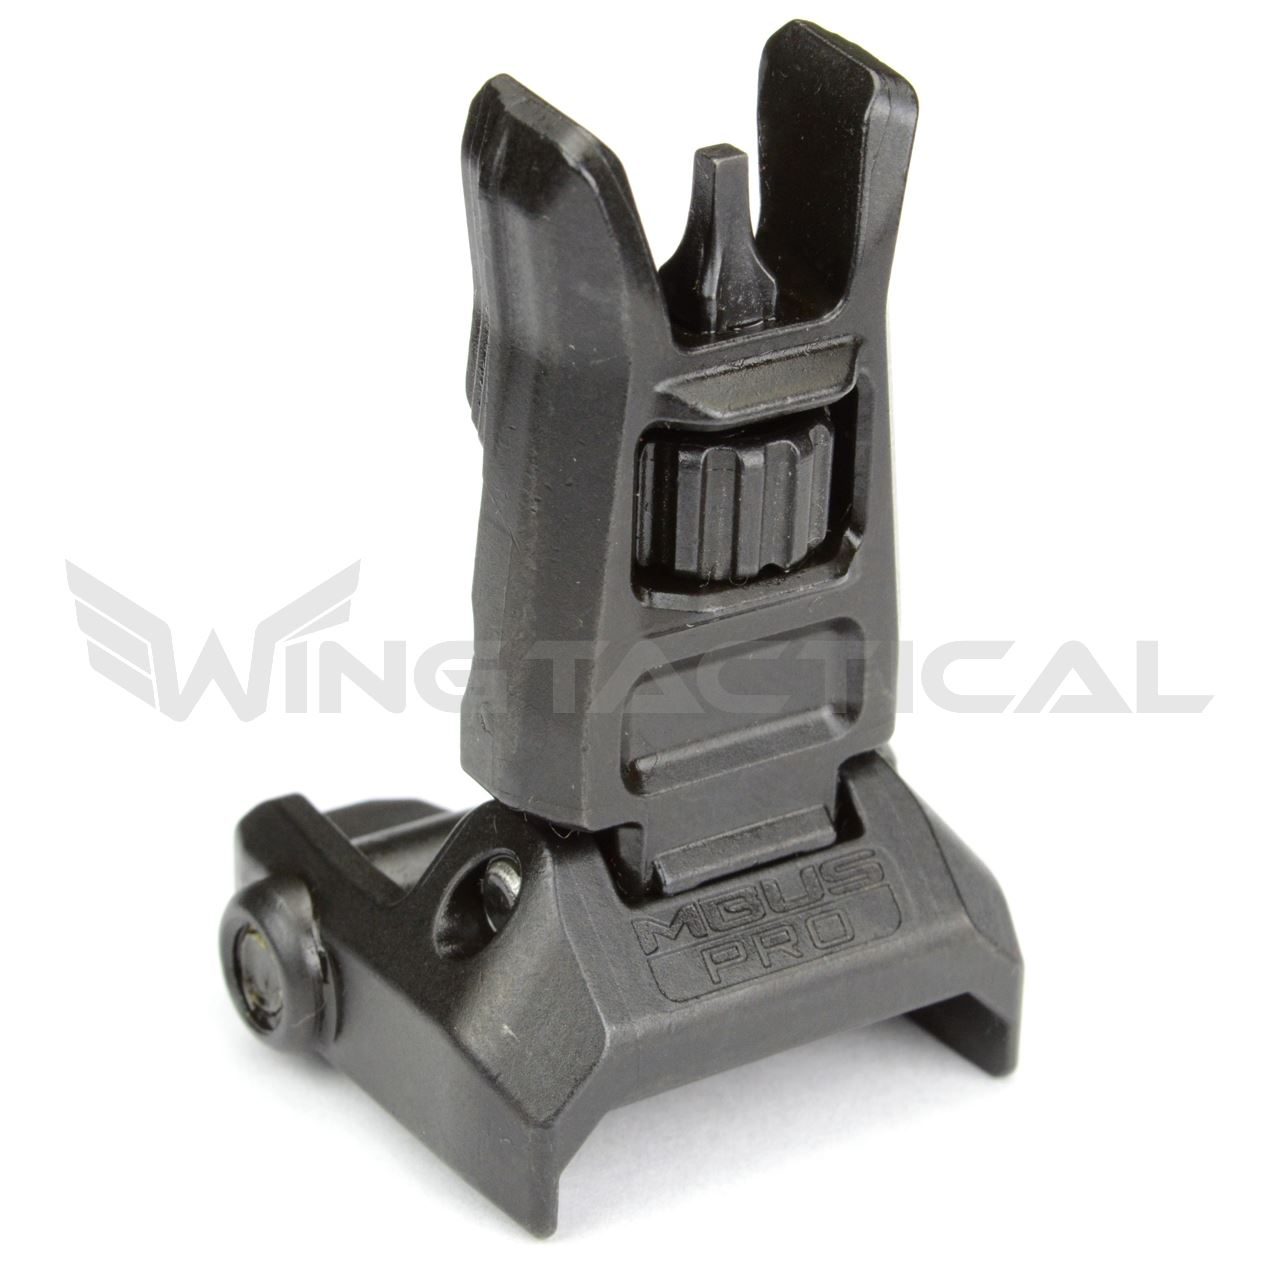 Magpul Back Up Front Sight (MBUS) Pro